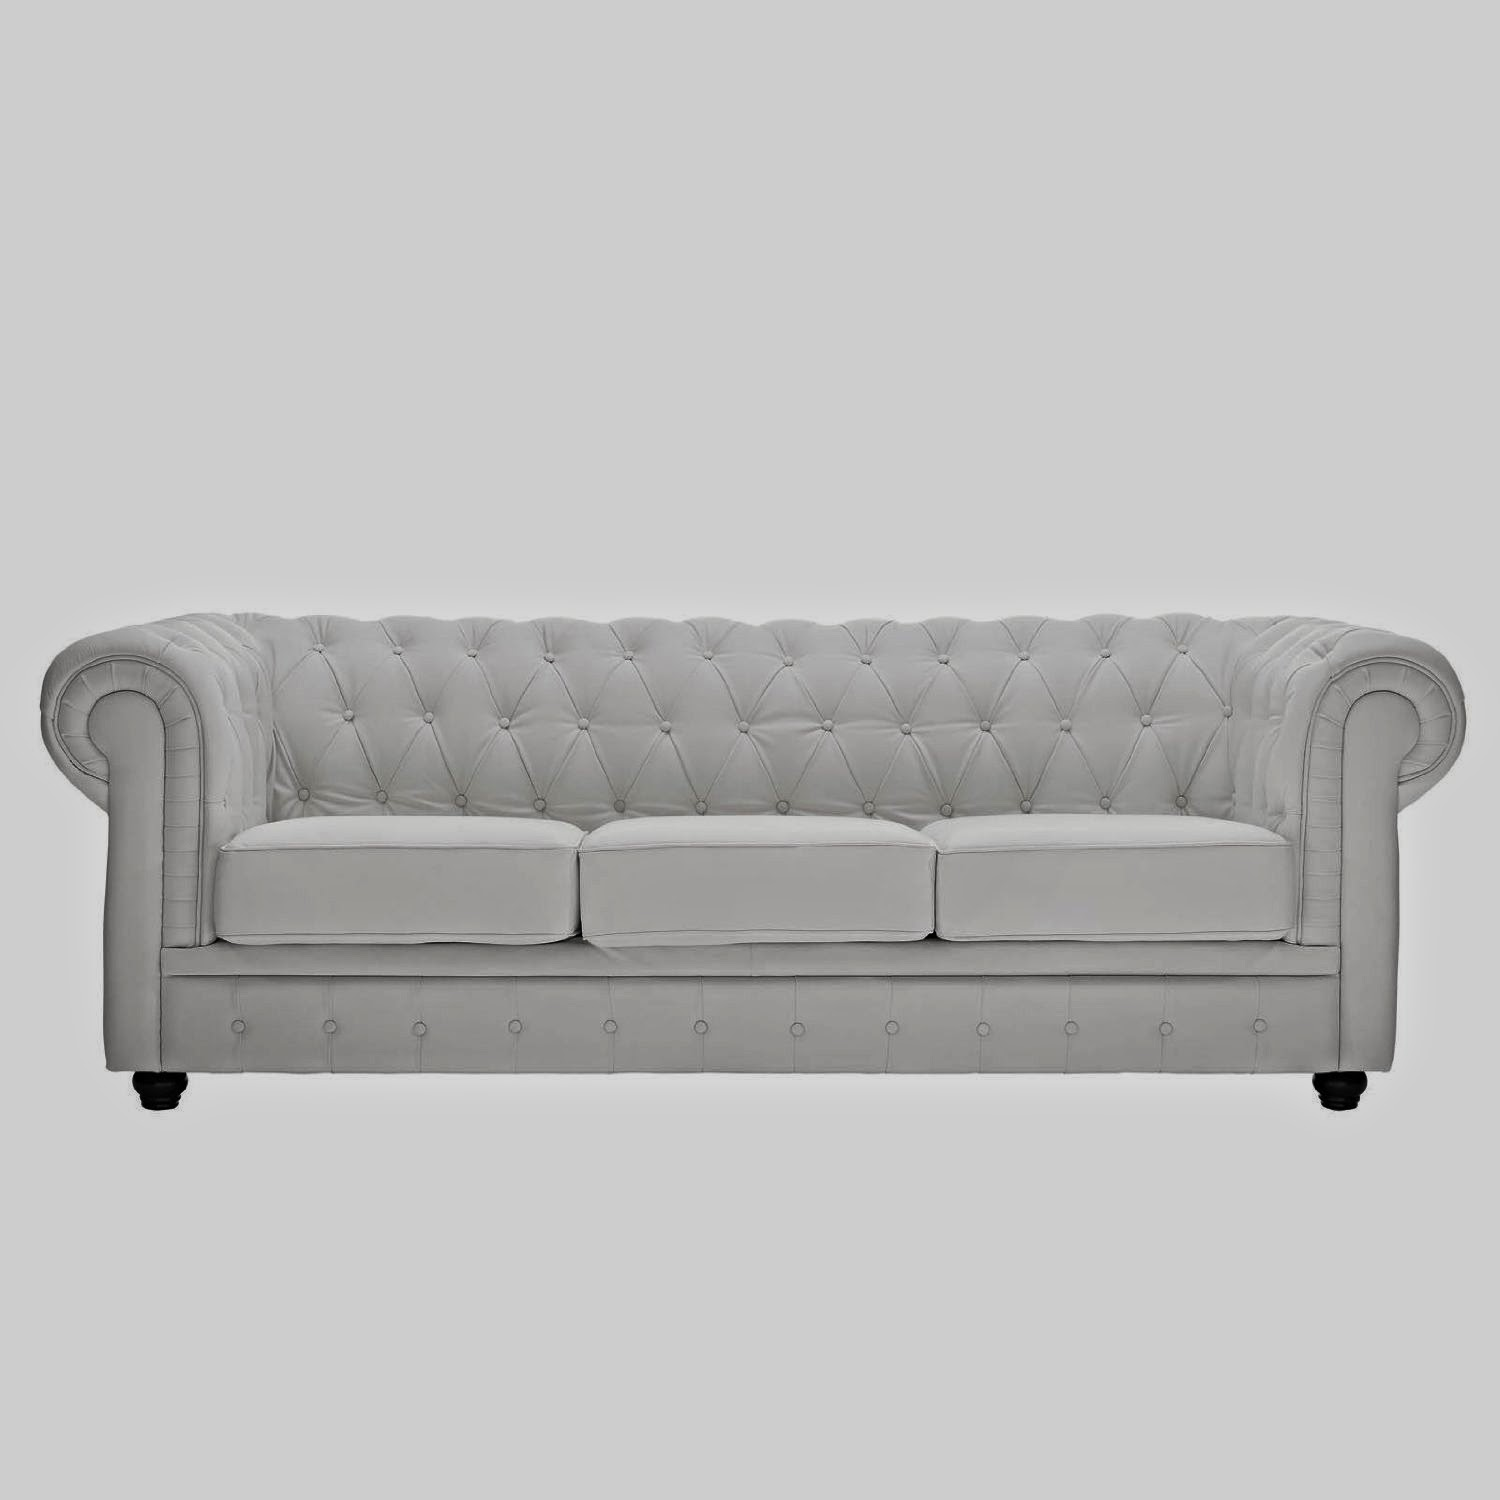 chesterfield sofa white chesterfield sofa. Black Bedroom Furniture Sets. Home Design Ideas